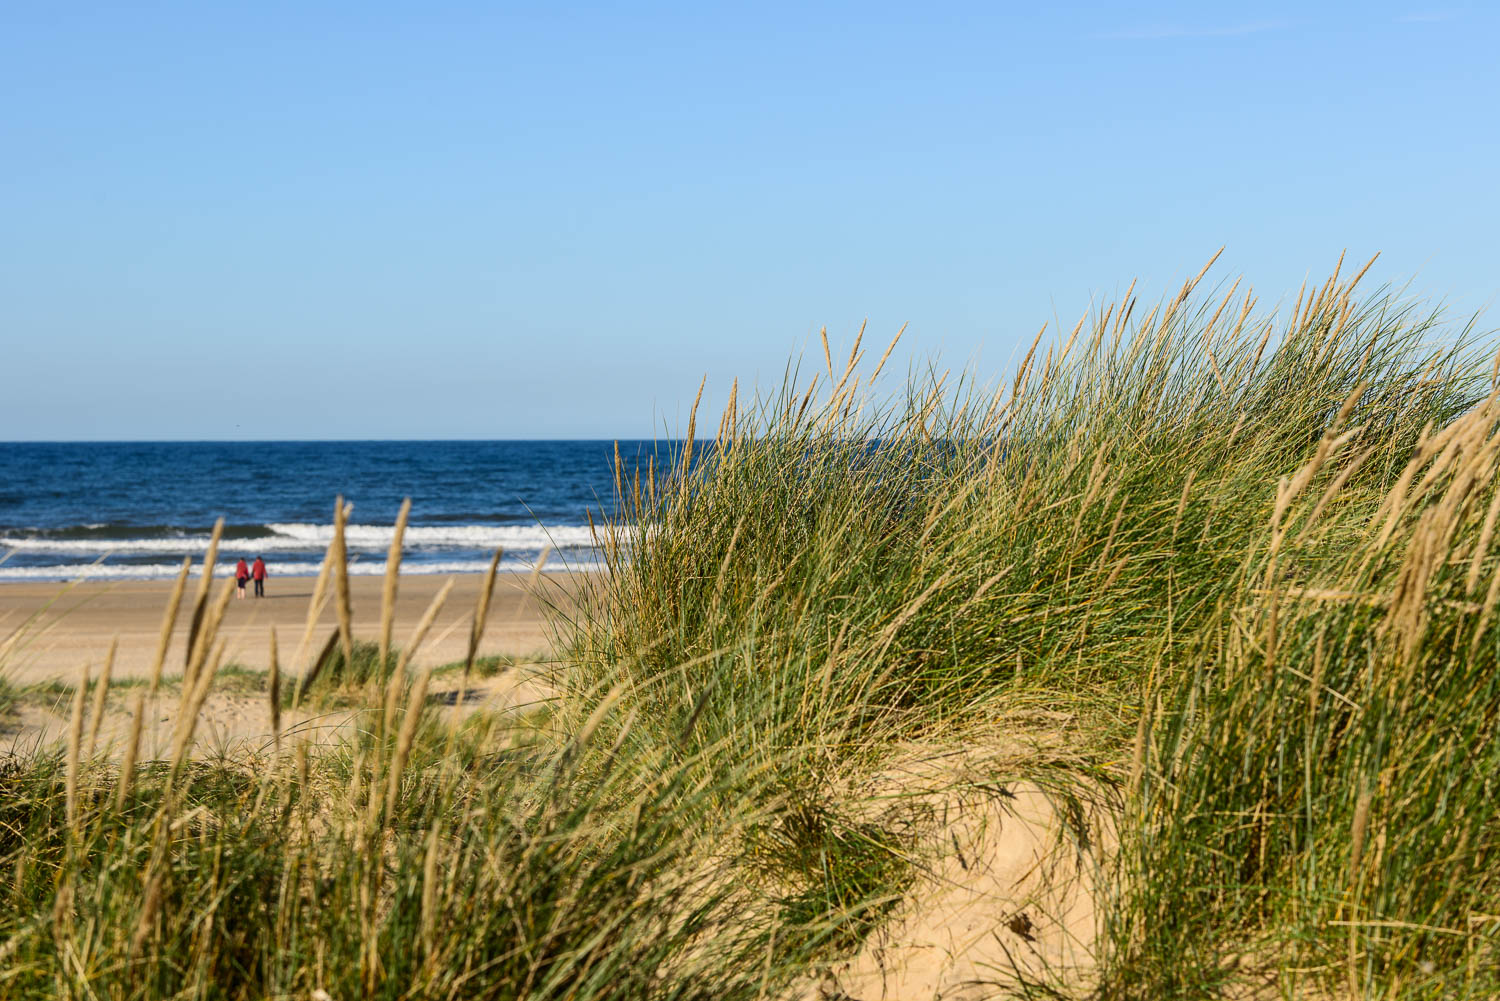 Holkham Beach, a couple from the dunes, Wells-next-the-Sea, Norfolk